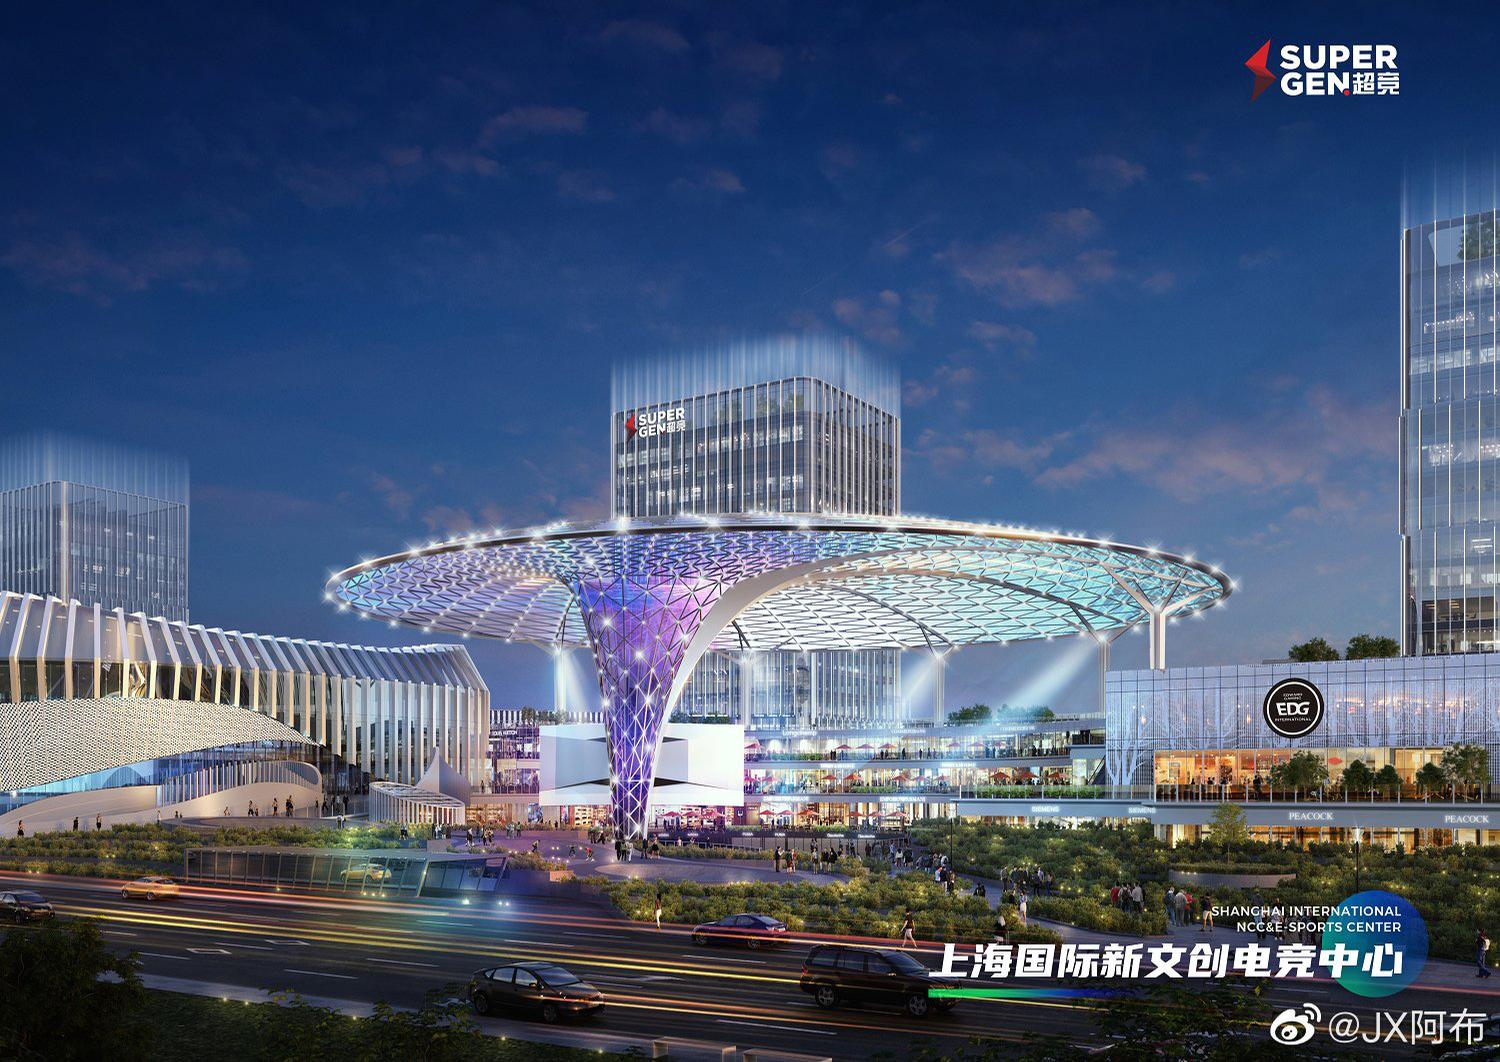 The 6,000-seat arena is expected to open in 2024 and is expected to host around 300 events each year / SuperGen Group